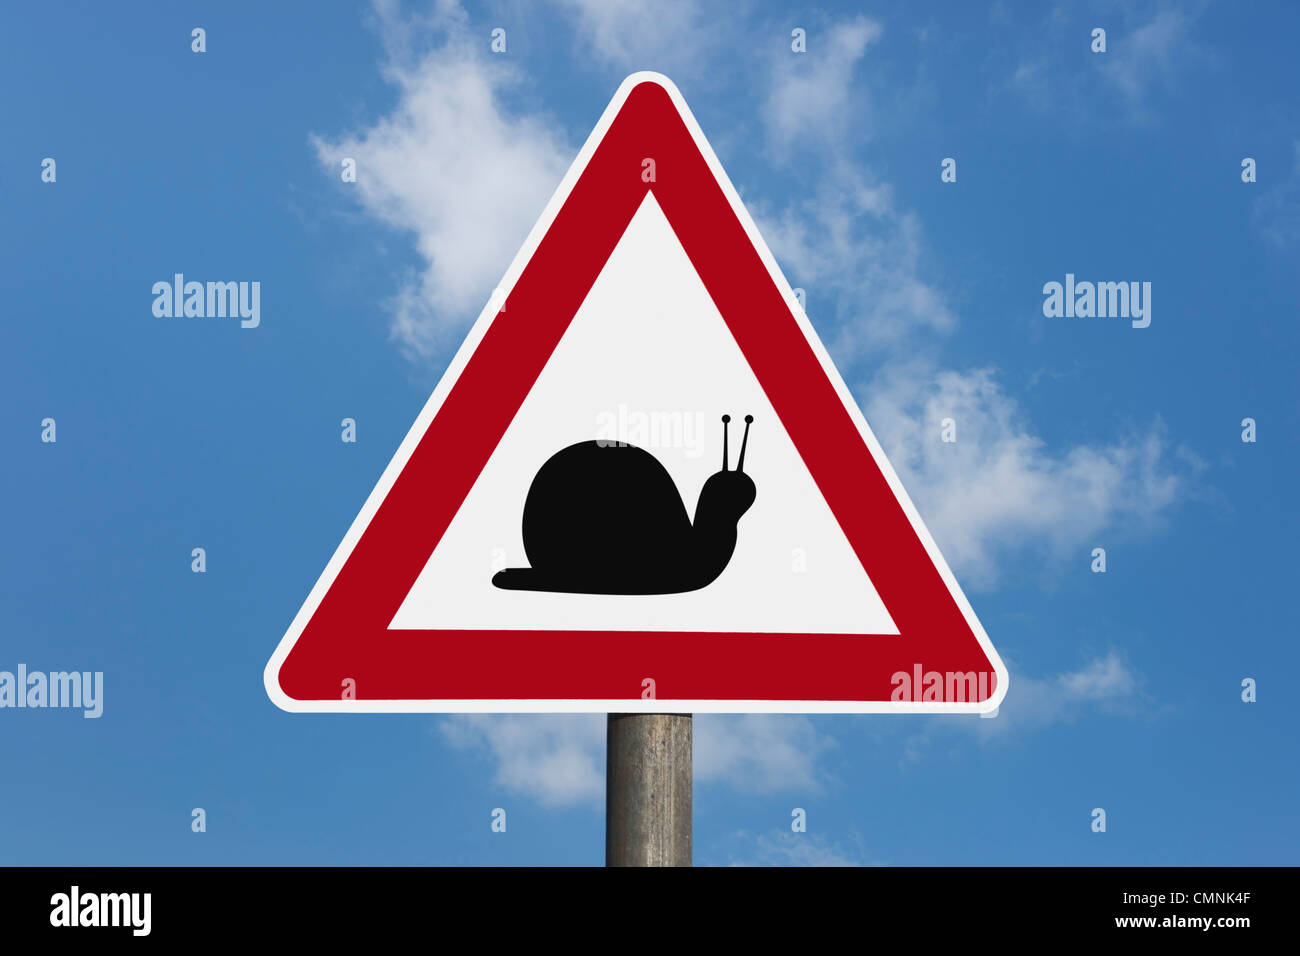 Detail photo of a danger sign with a snail in the middle, background sky. - Stock Image